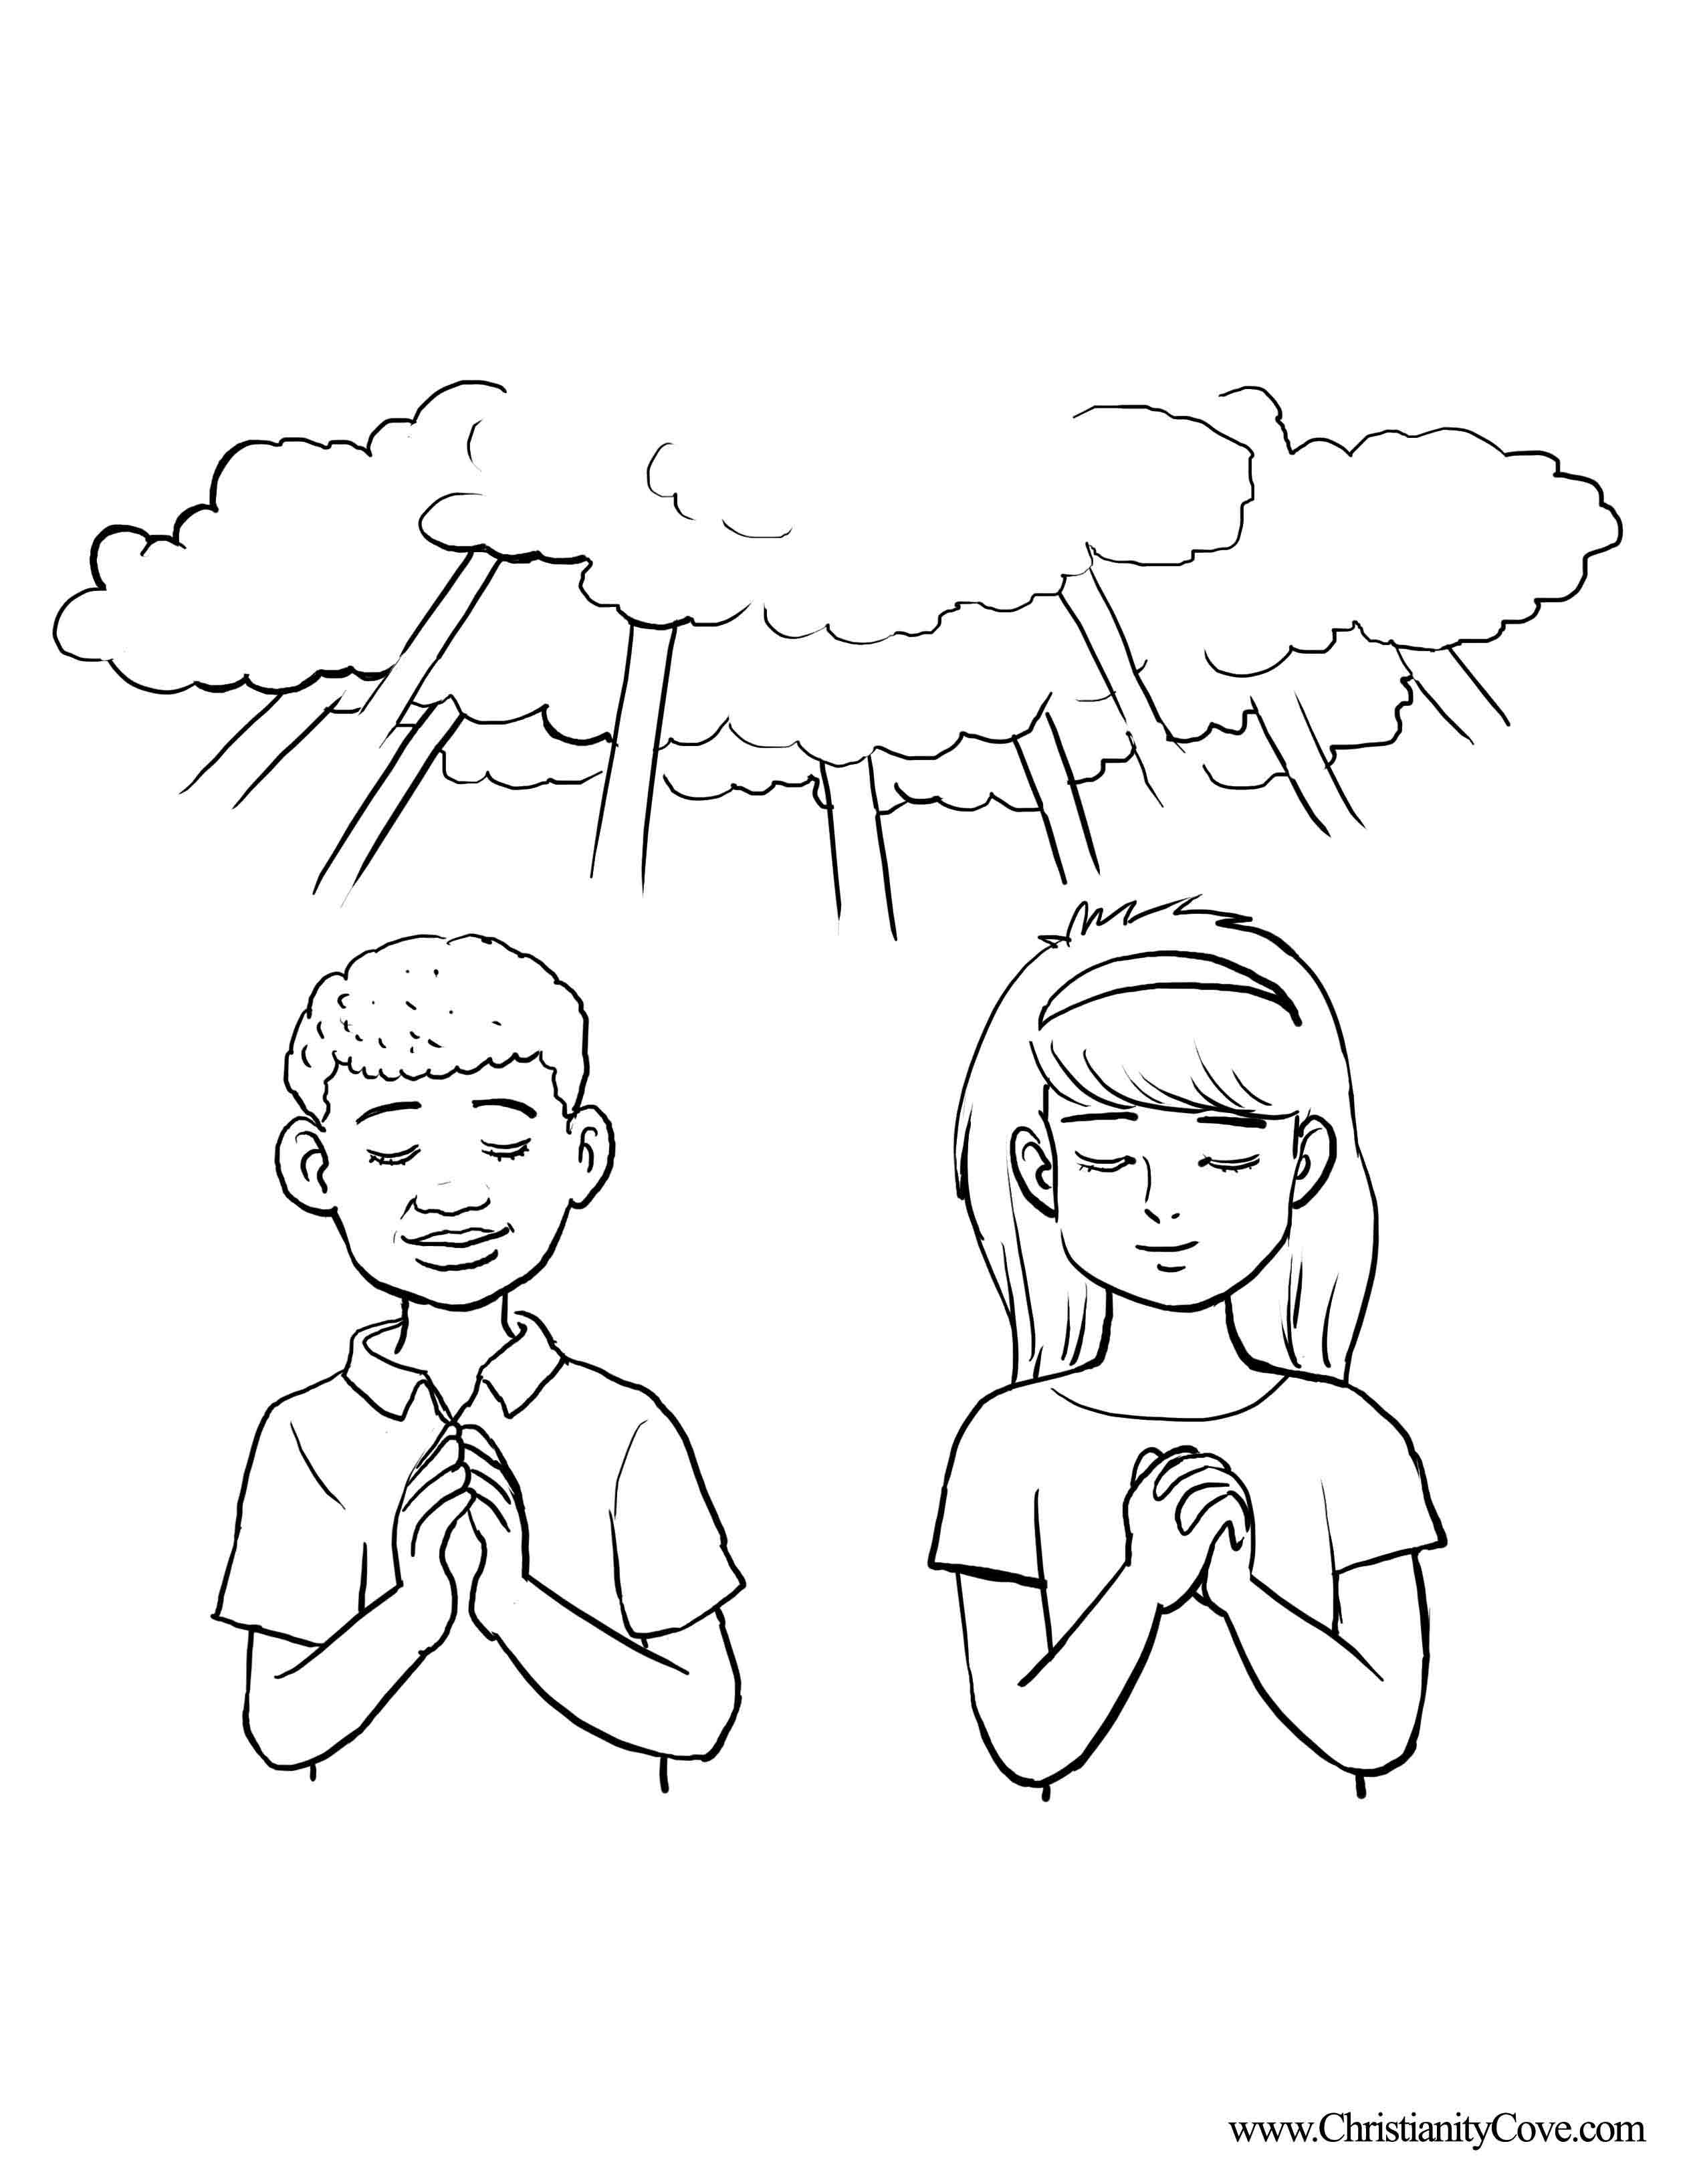 naaman coloring page - naaman and the servant girl coloring pages naaman the